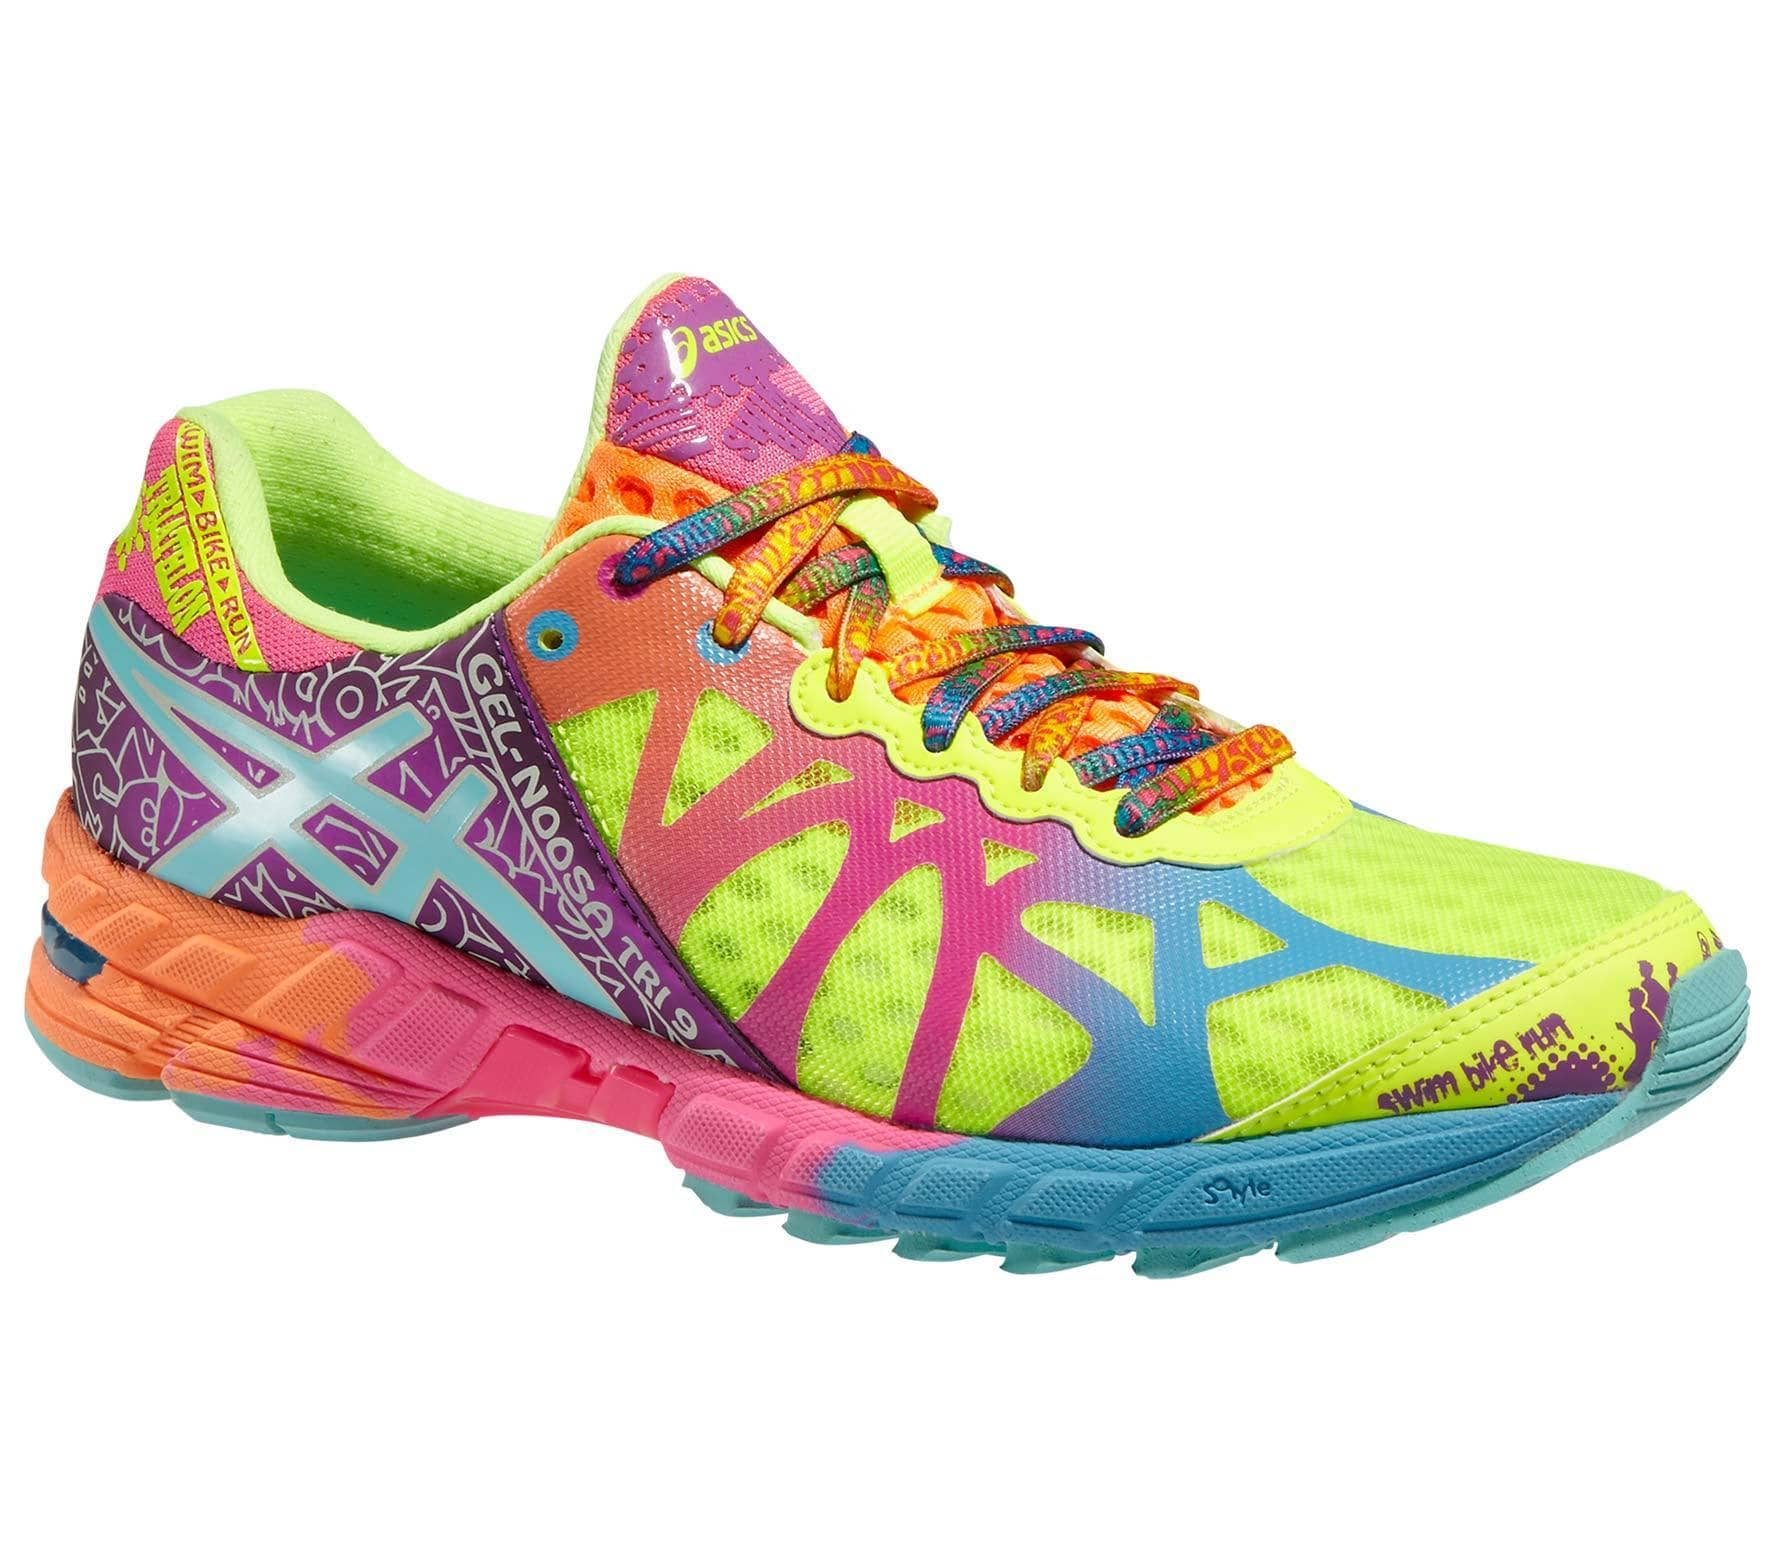 ... low price asics gel noosa tri 9 womens running shoes yellow purple  80788 d9033 c51905bde9e5b